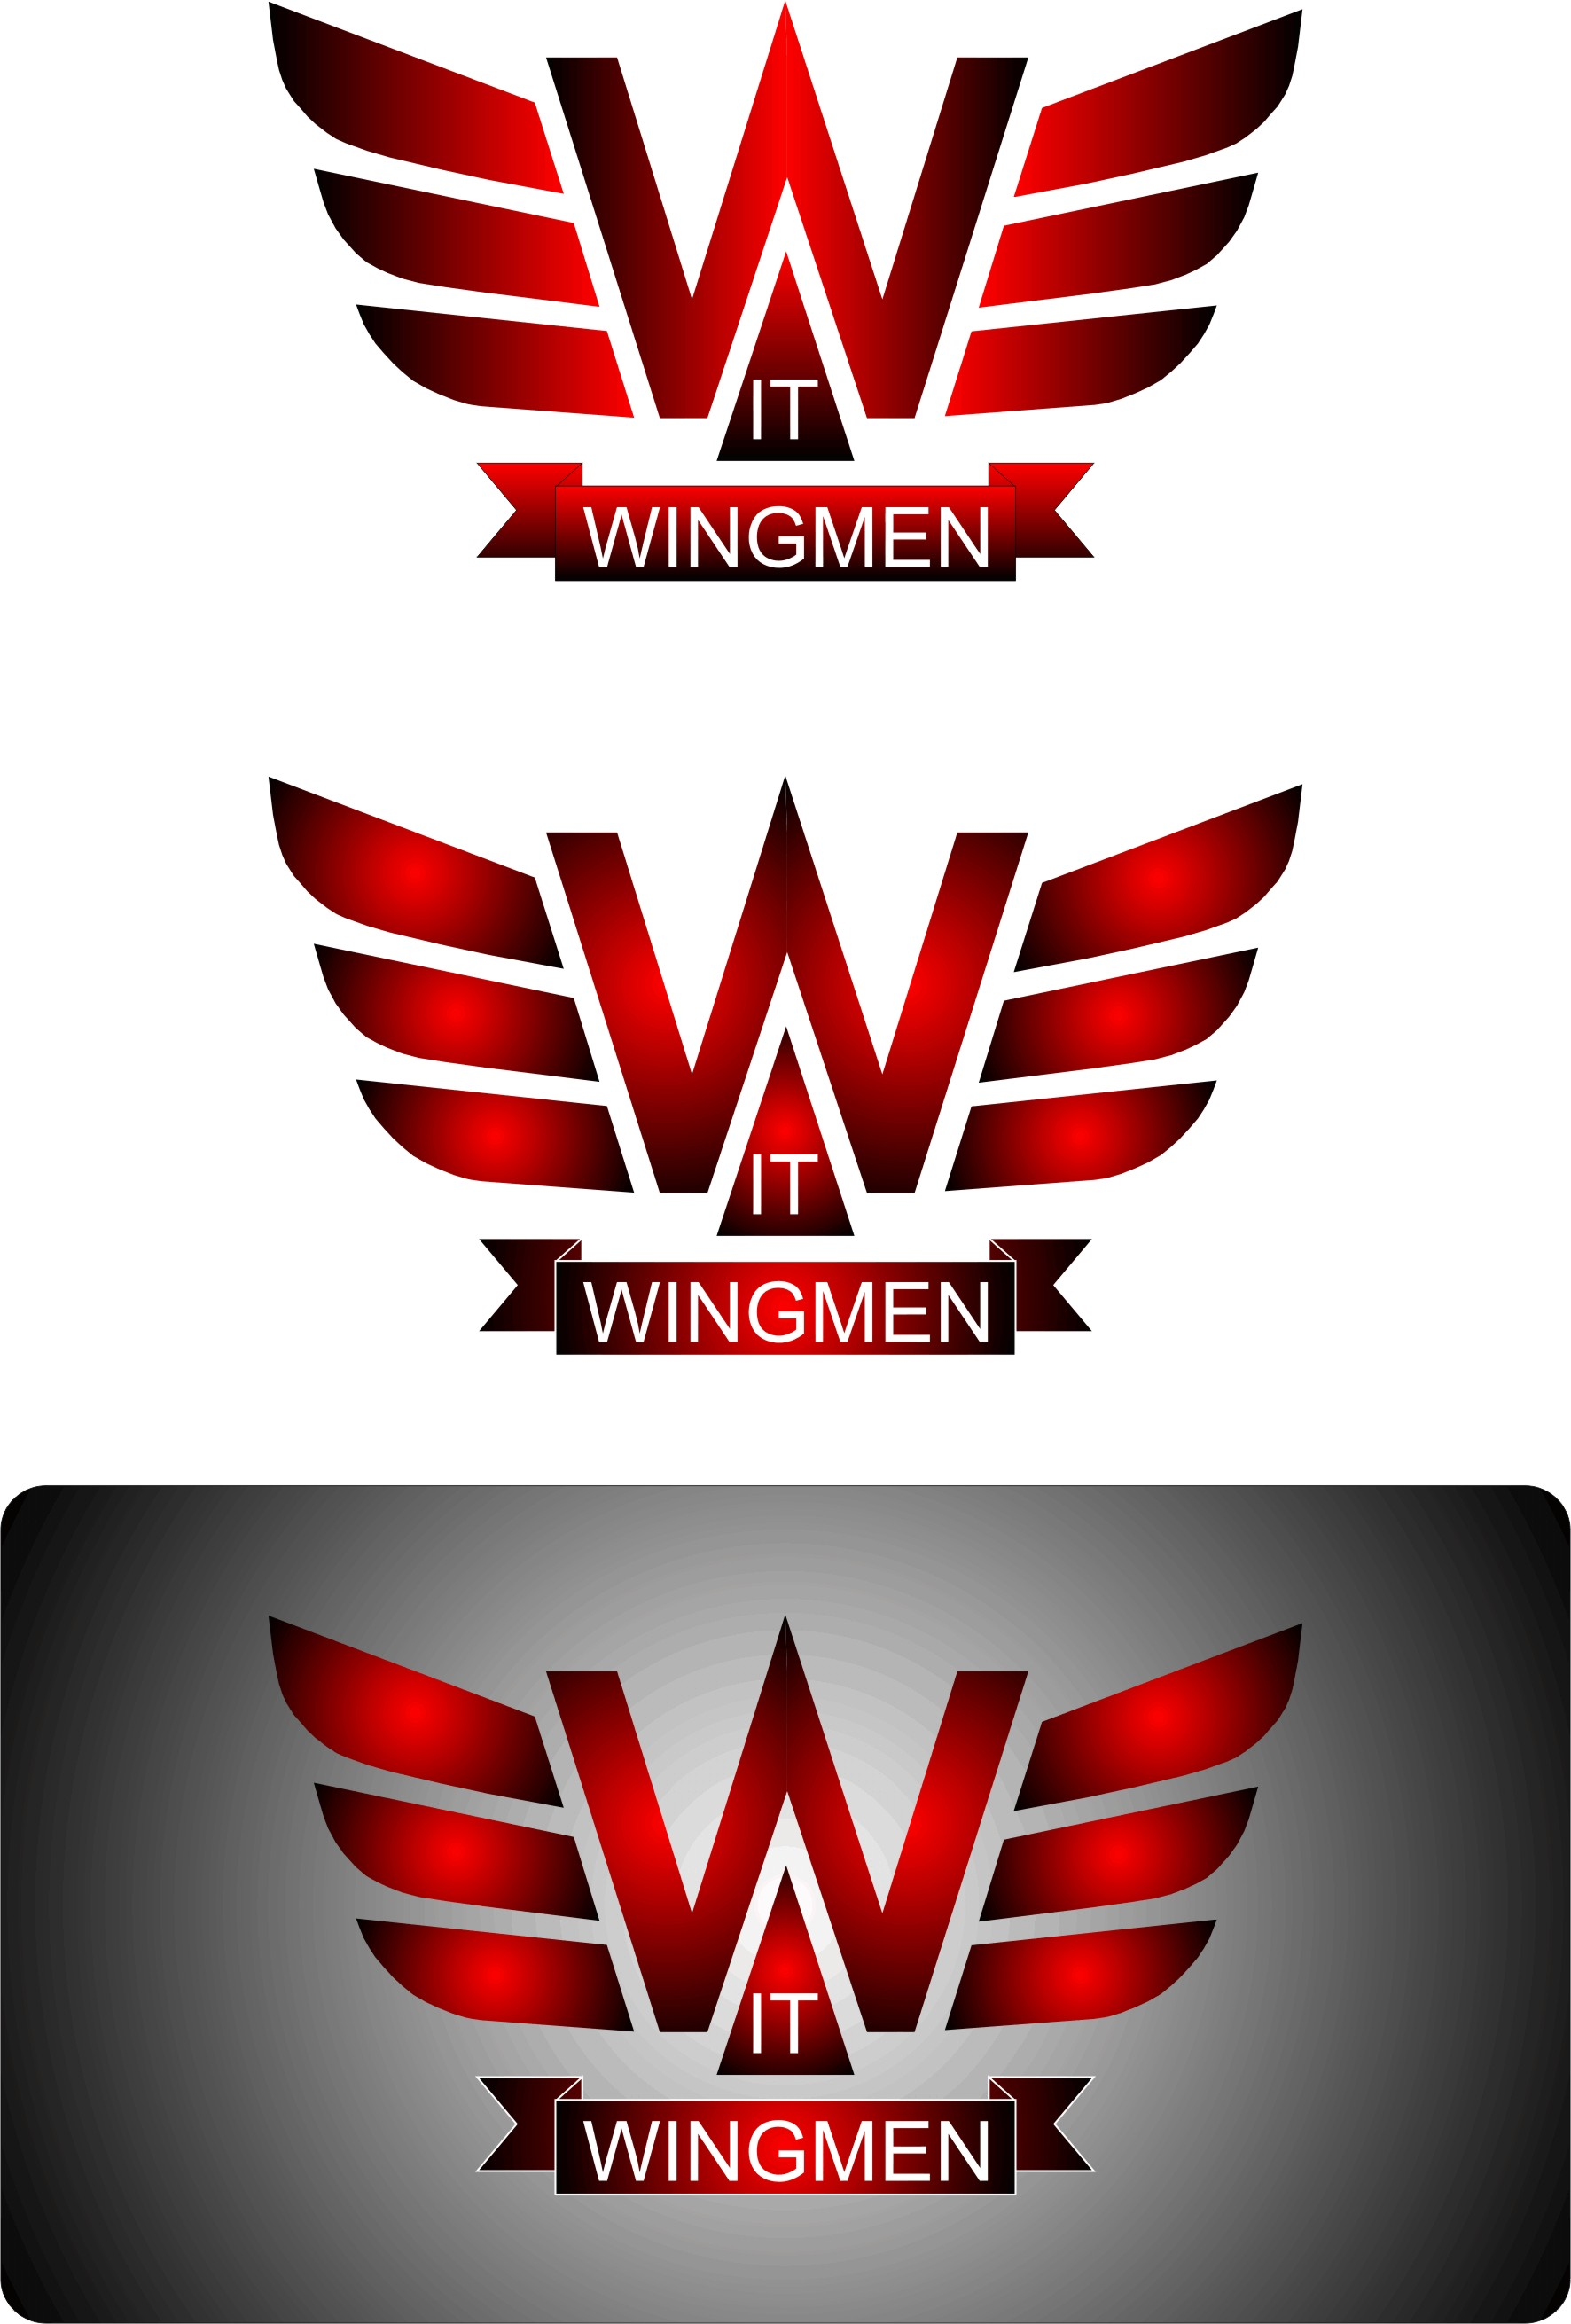 Logo Design by Korsunov Oleg - Entry No. 74 in the Logo Design Contest New Logo Design for IT Wingmen.